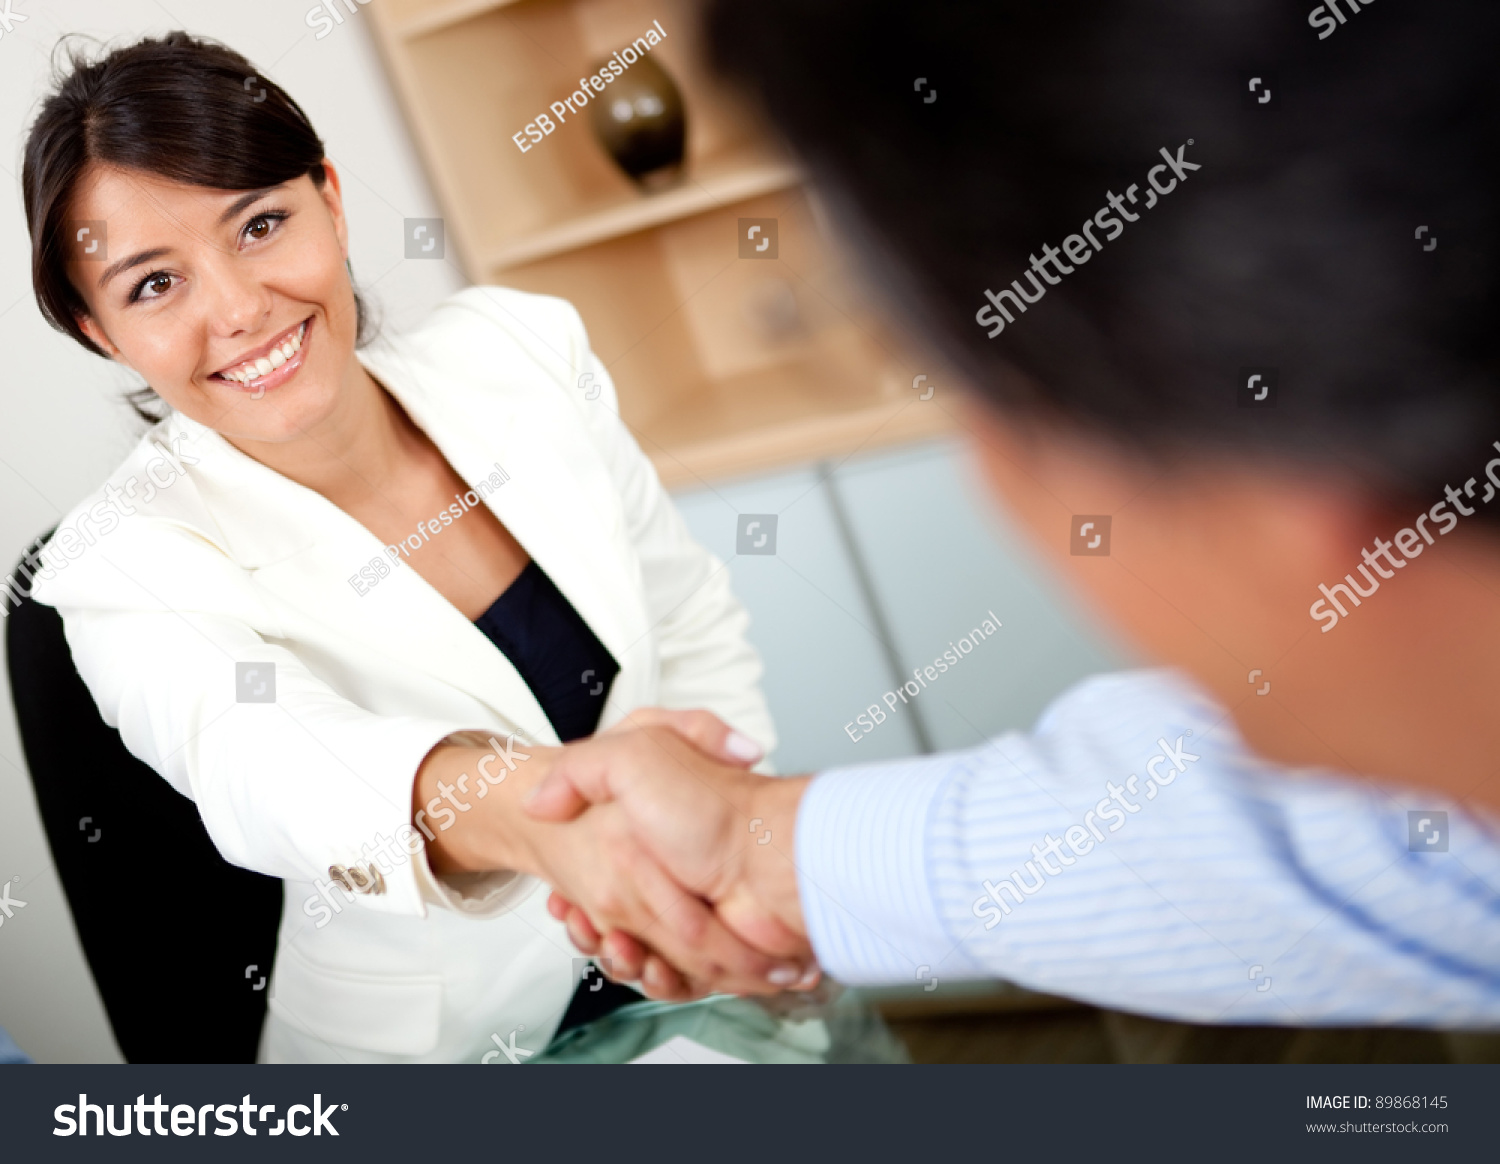 Business people handshake greeting deal at work photo free download - Business People Closing A Business Deal With Handshake